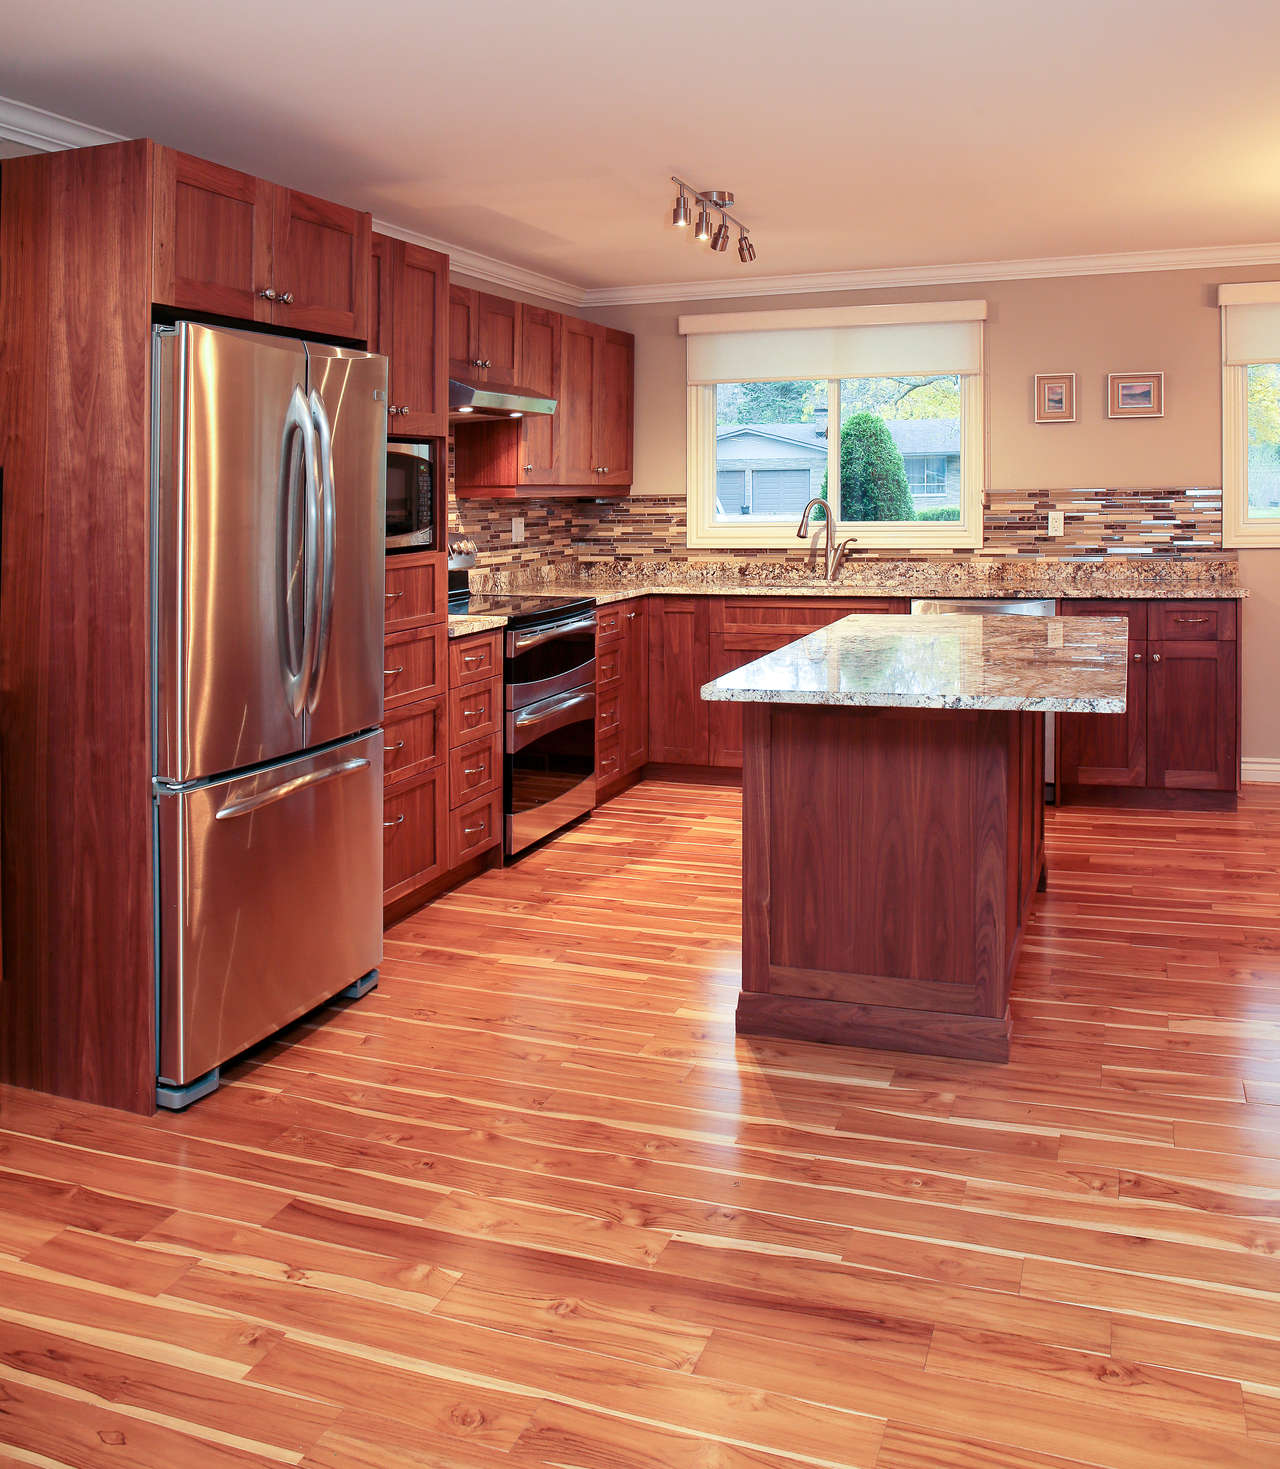 Kitchen & Residential Millwork & Cabinetry